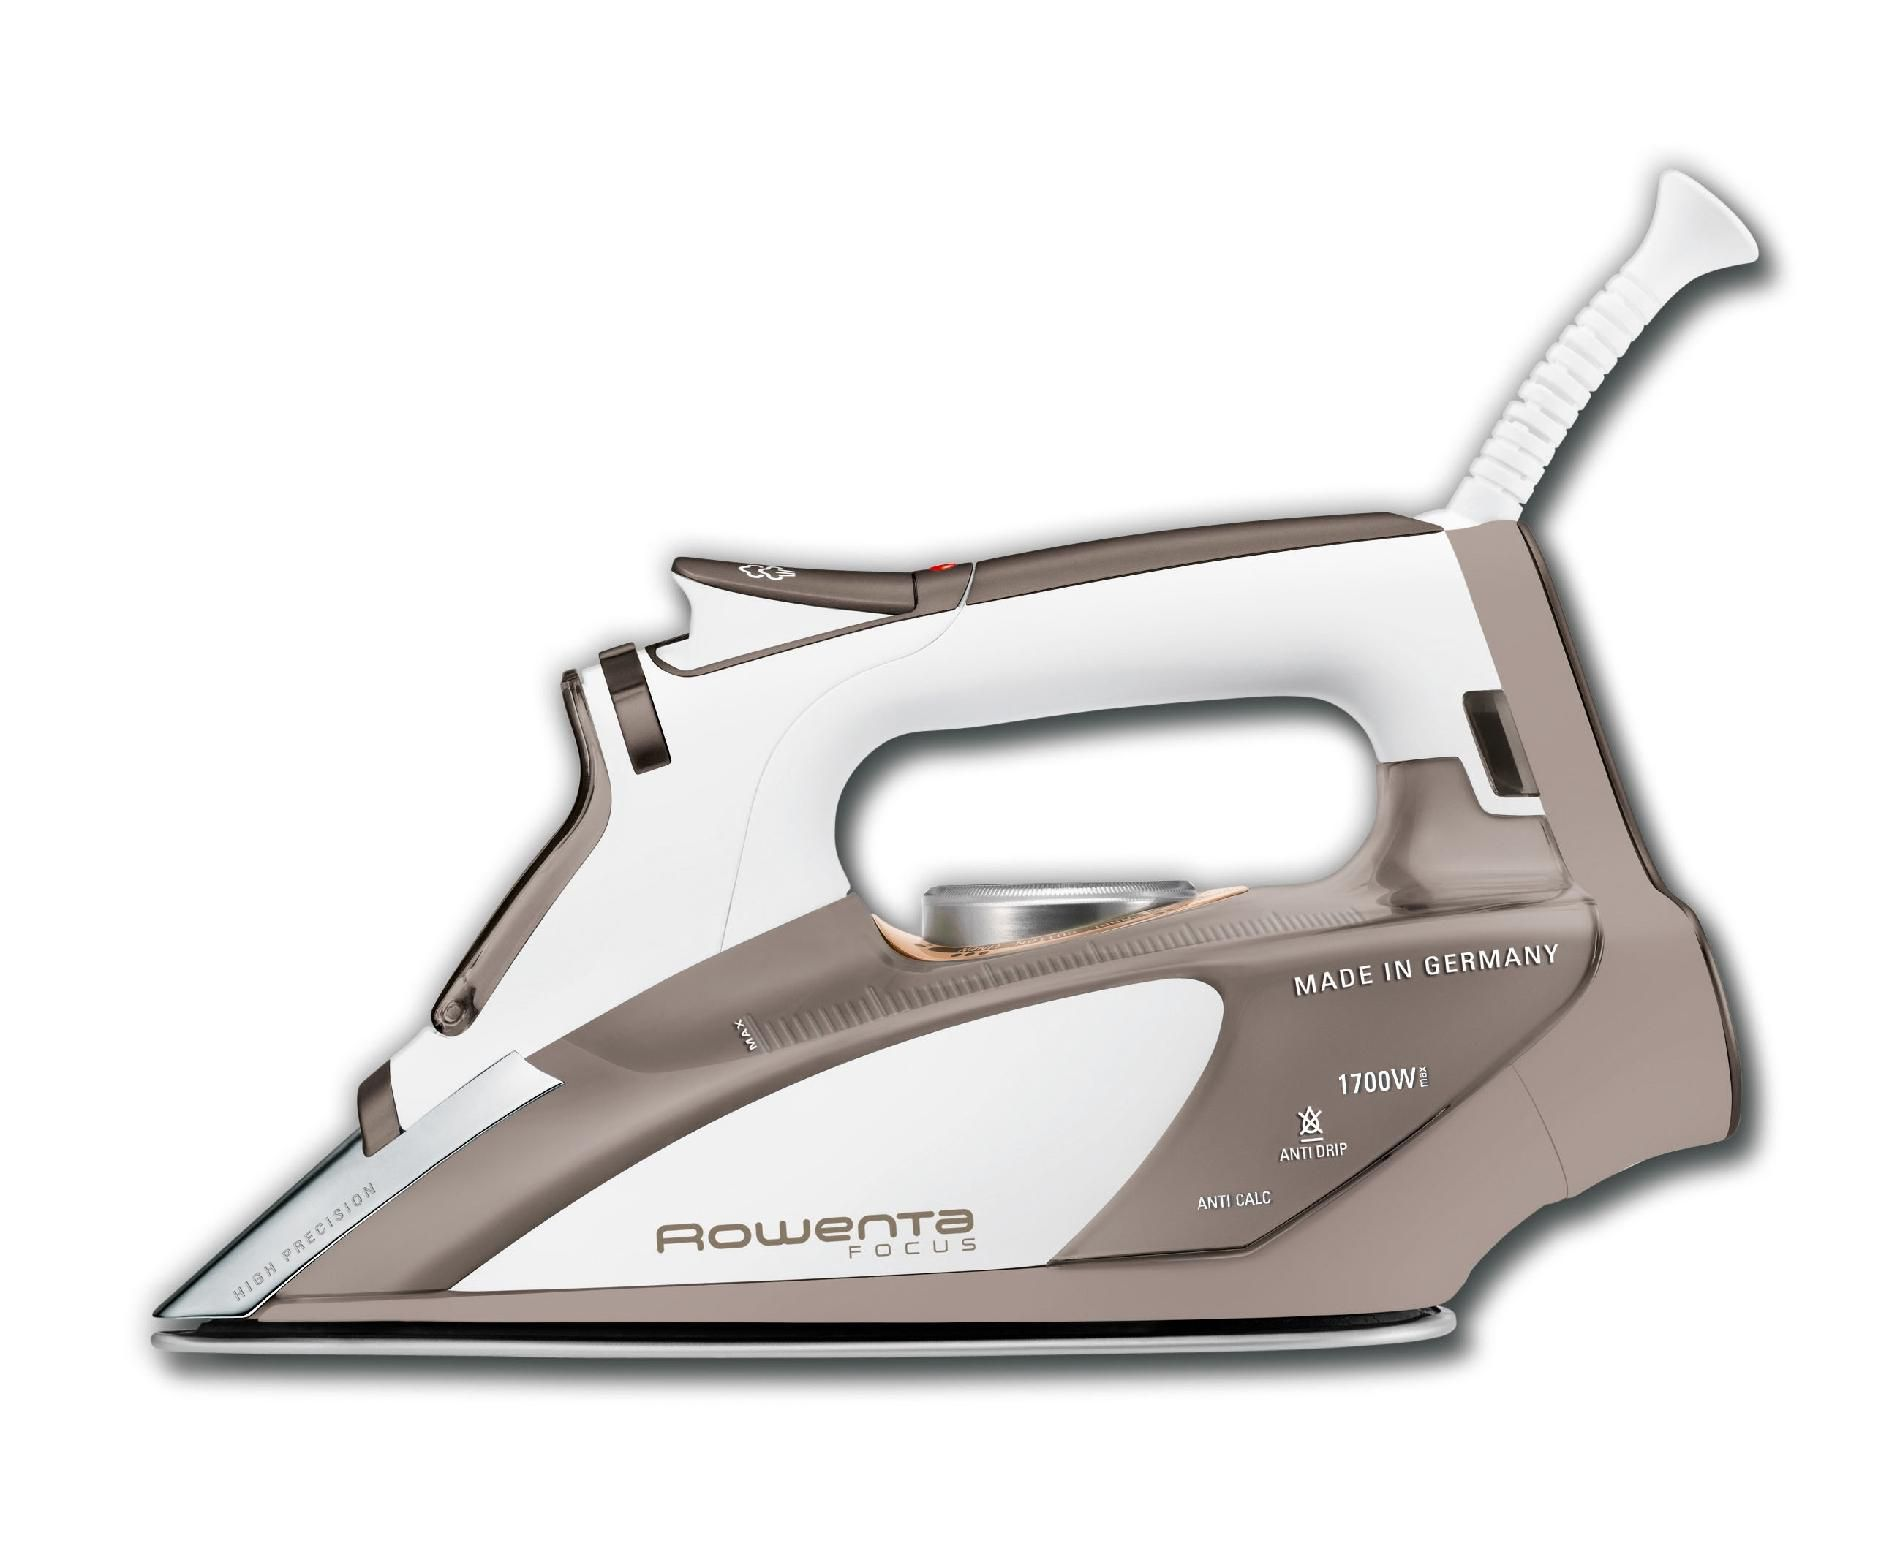 Rowenta Focus Stainless Steel 1700 Watt Iron DW5080